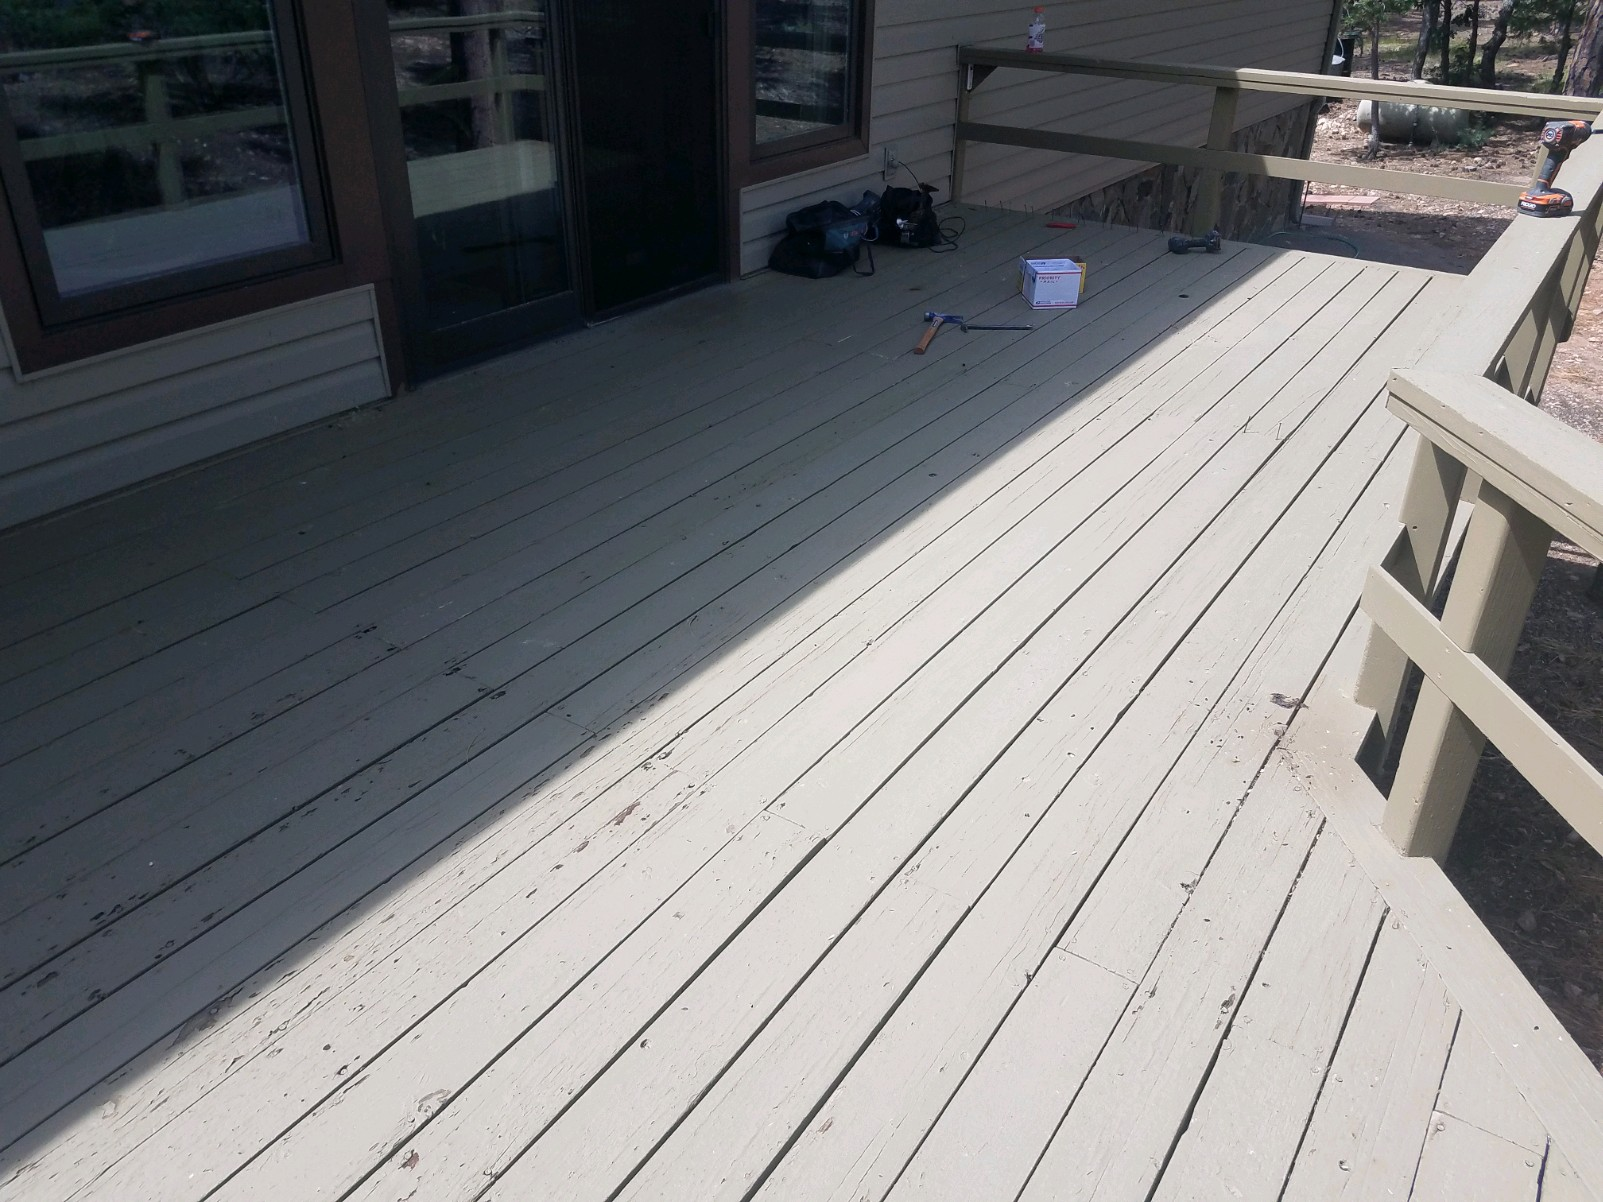 Image showing deck